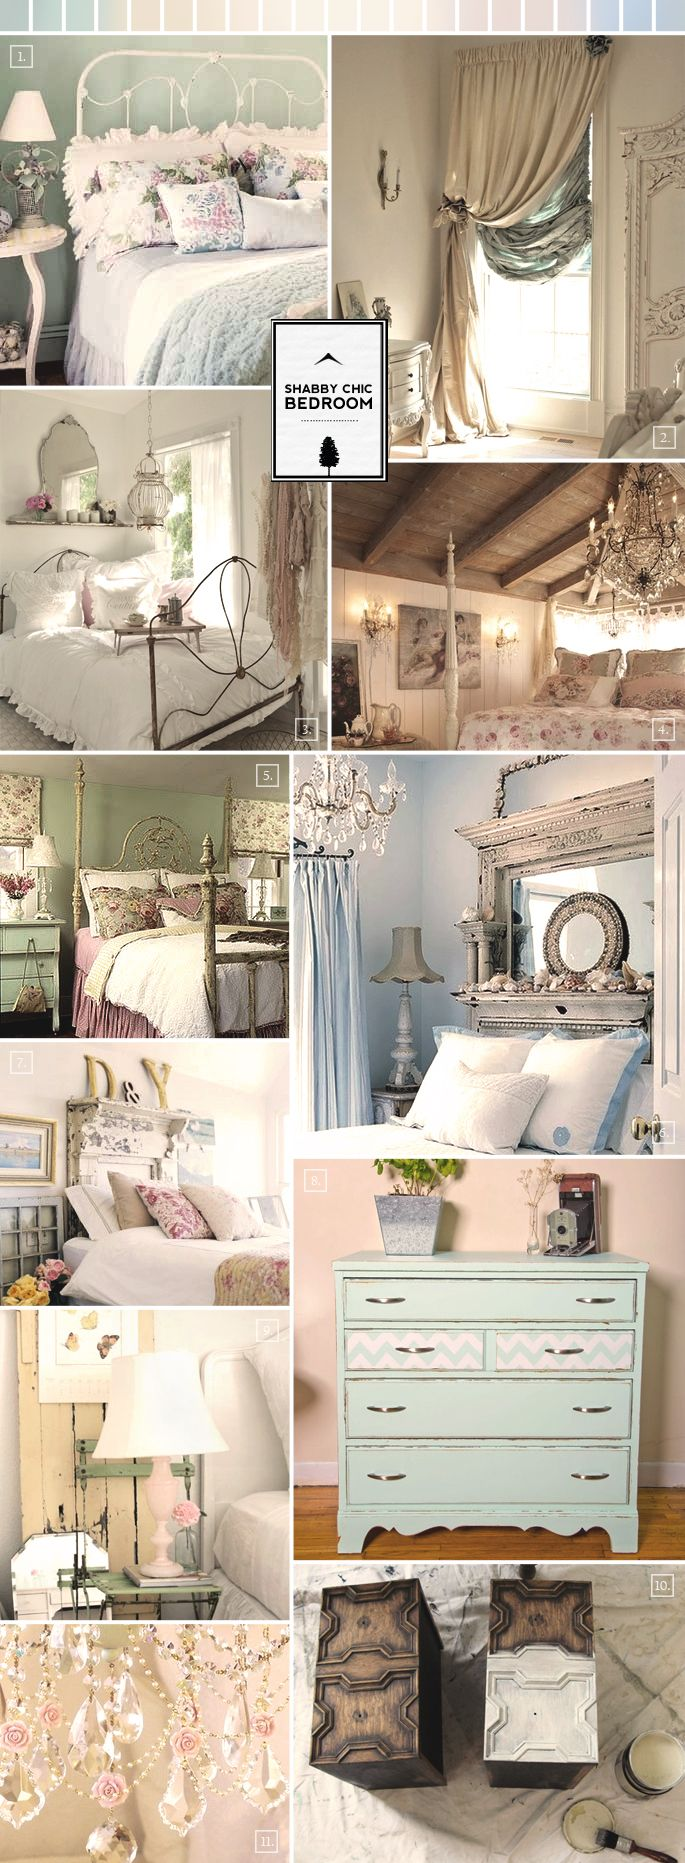 shabby chic bedroom ideas and decor inspiration - Shabby Chic Bedroom Decorating Ideas